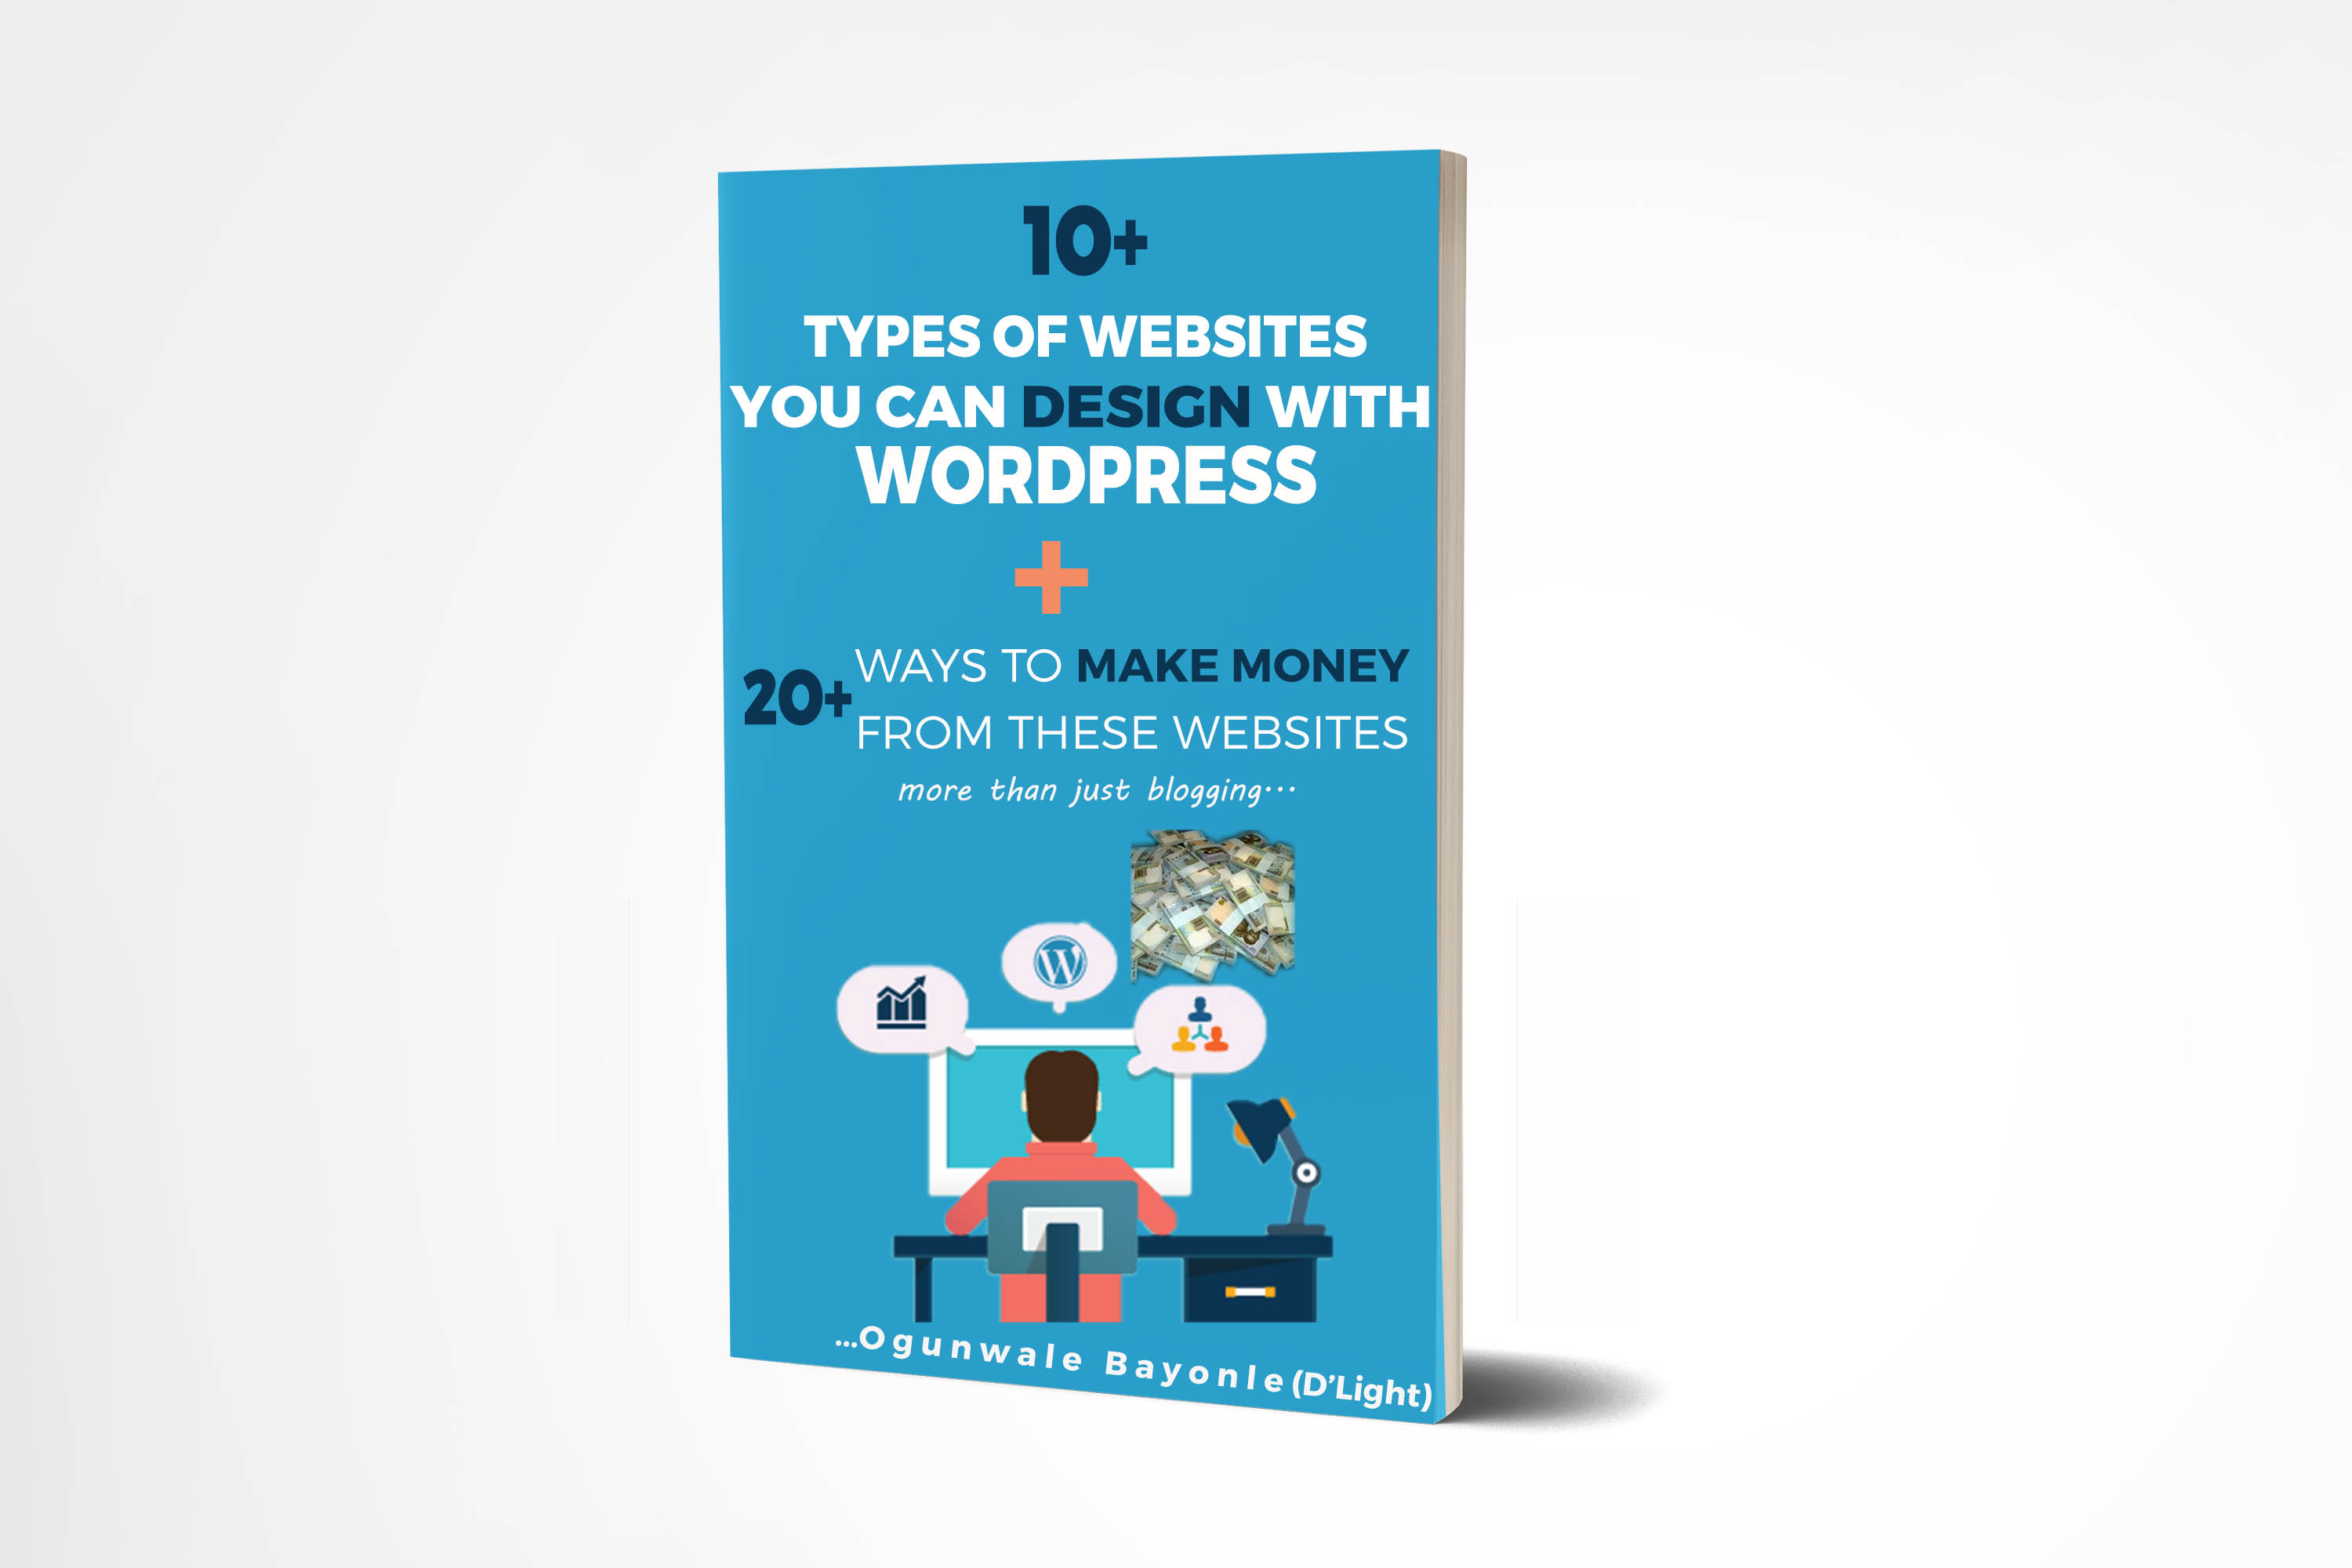 10+ types of wordpress websites plus 20+ ways to make money on them